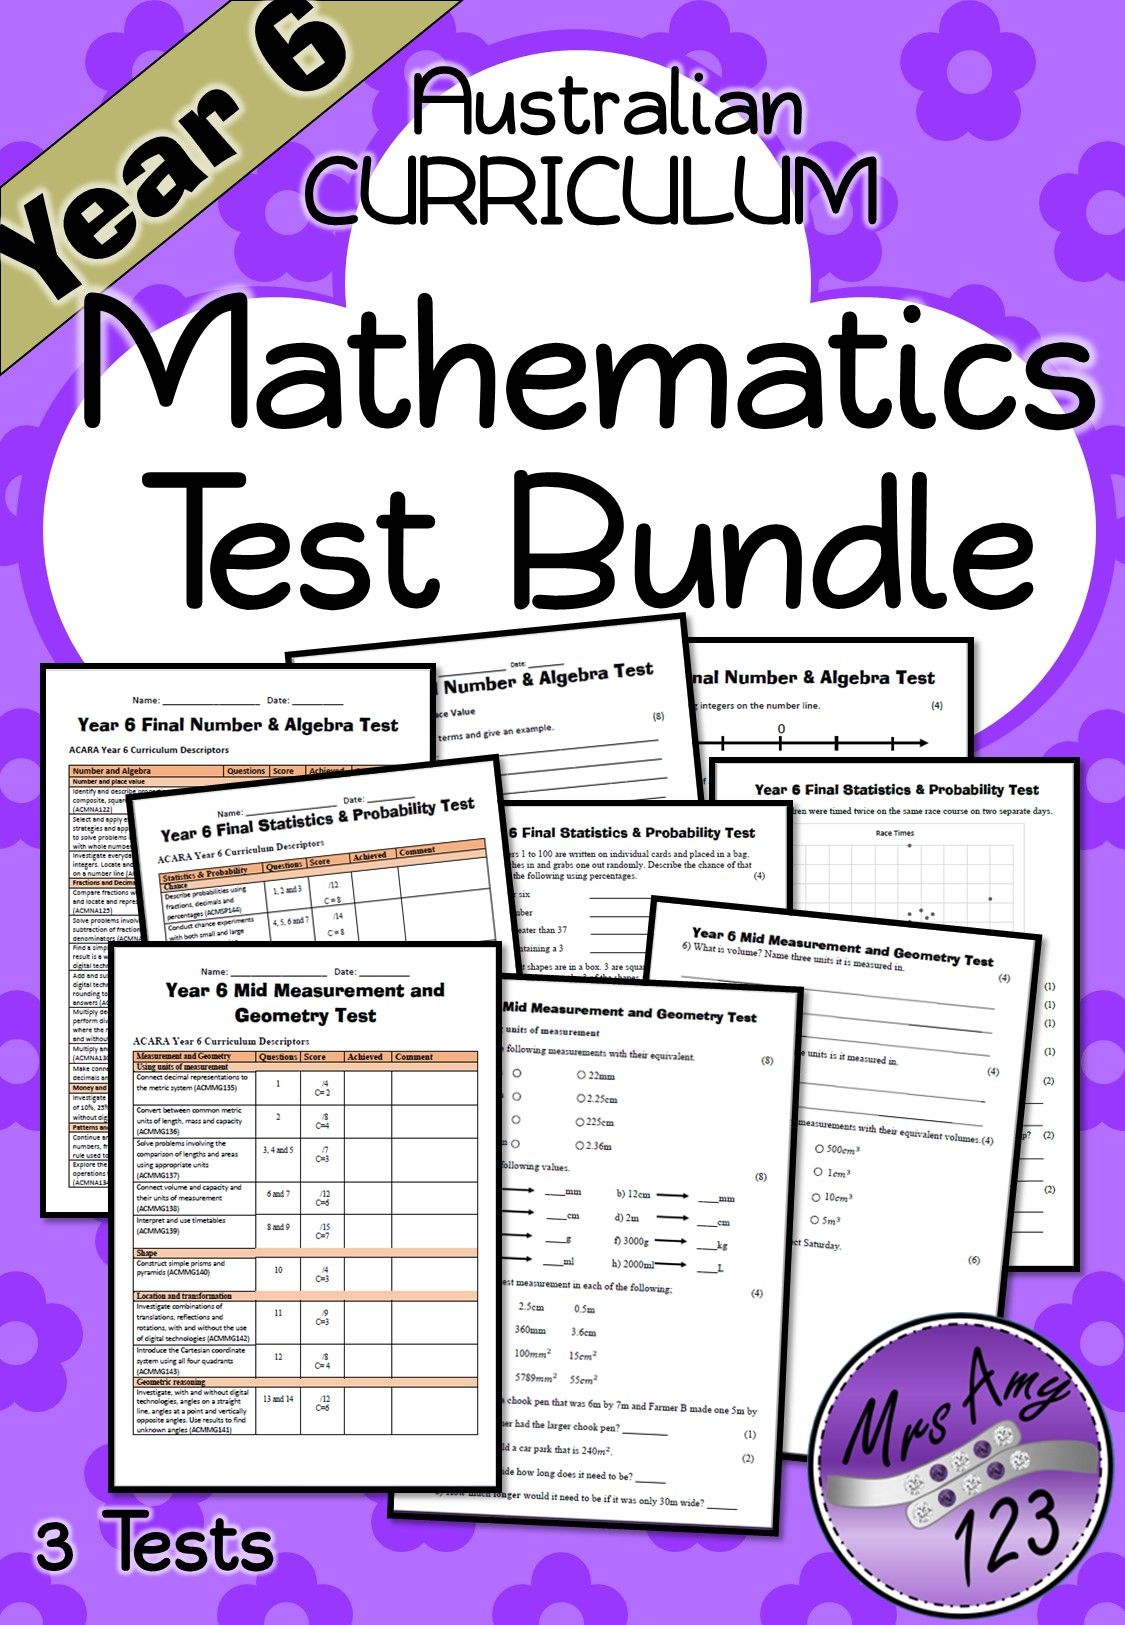 Year 6 Mathematics Test Bundle